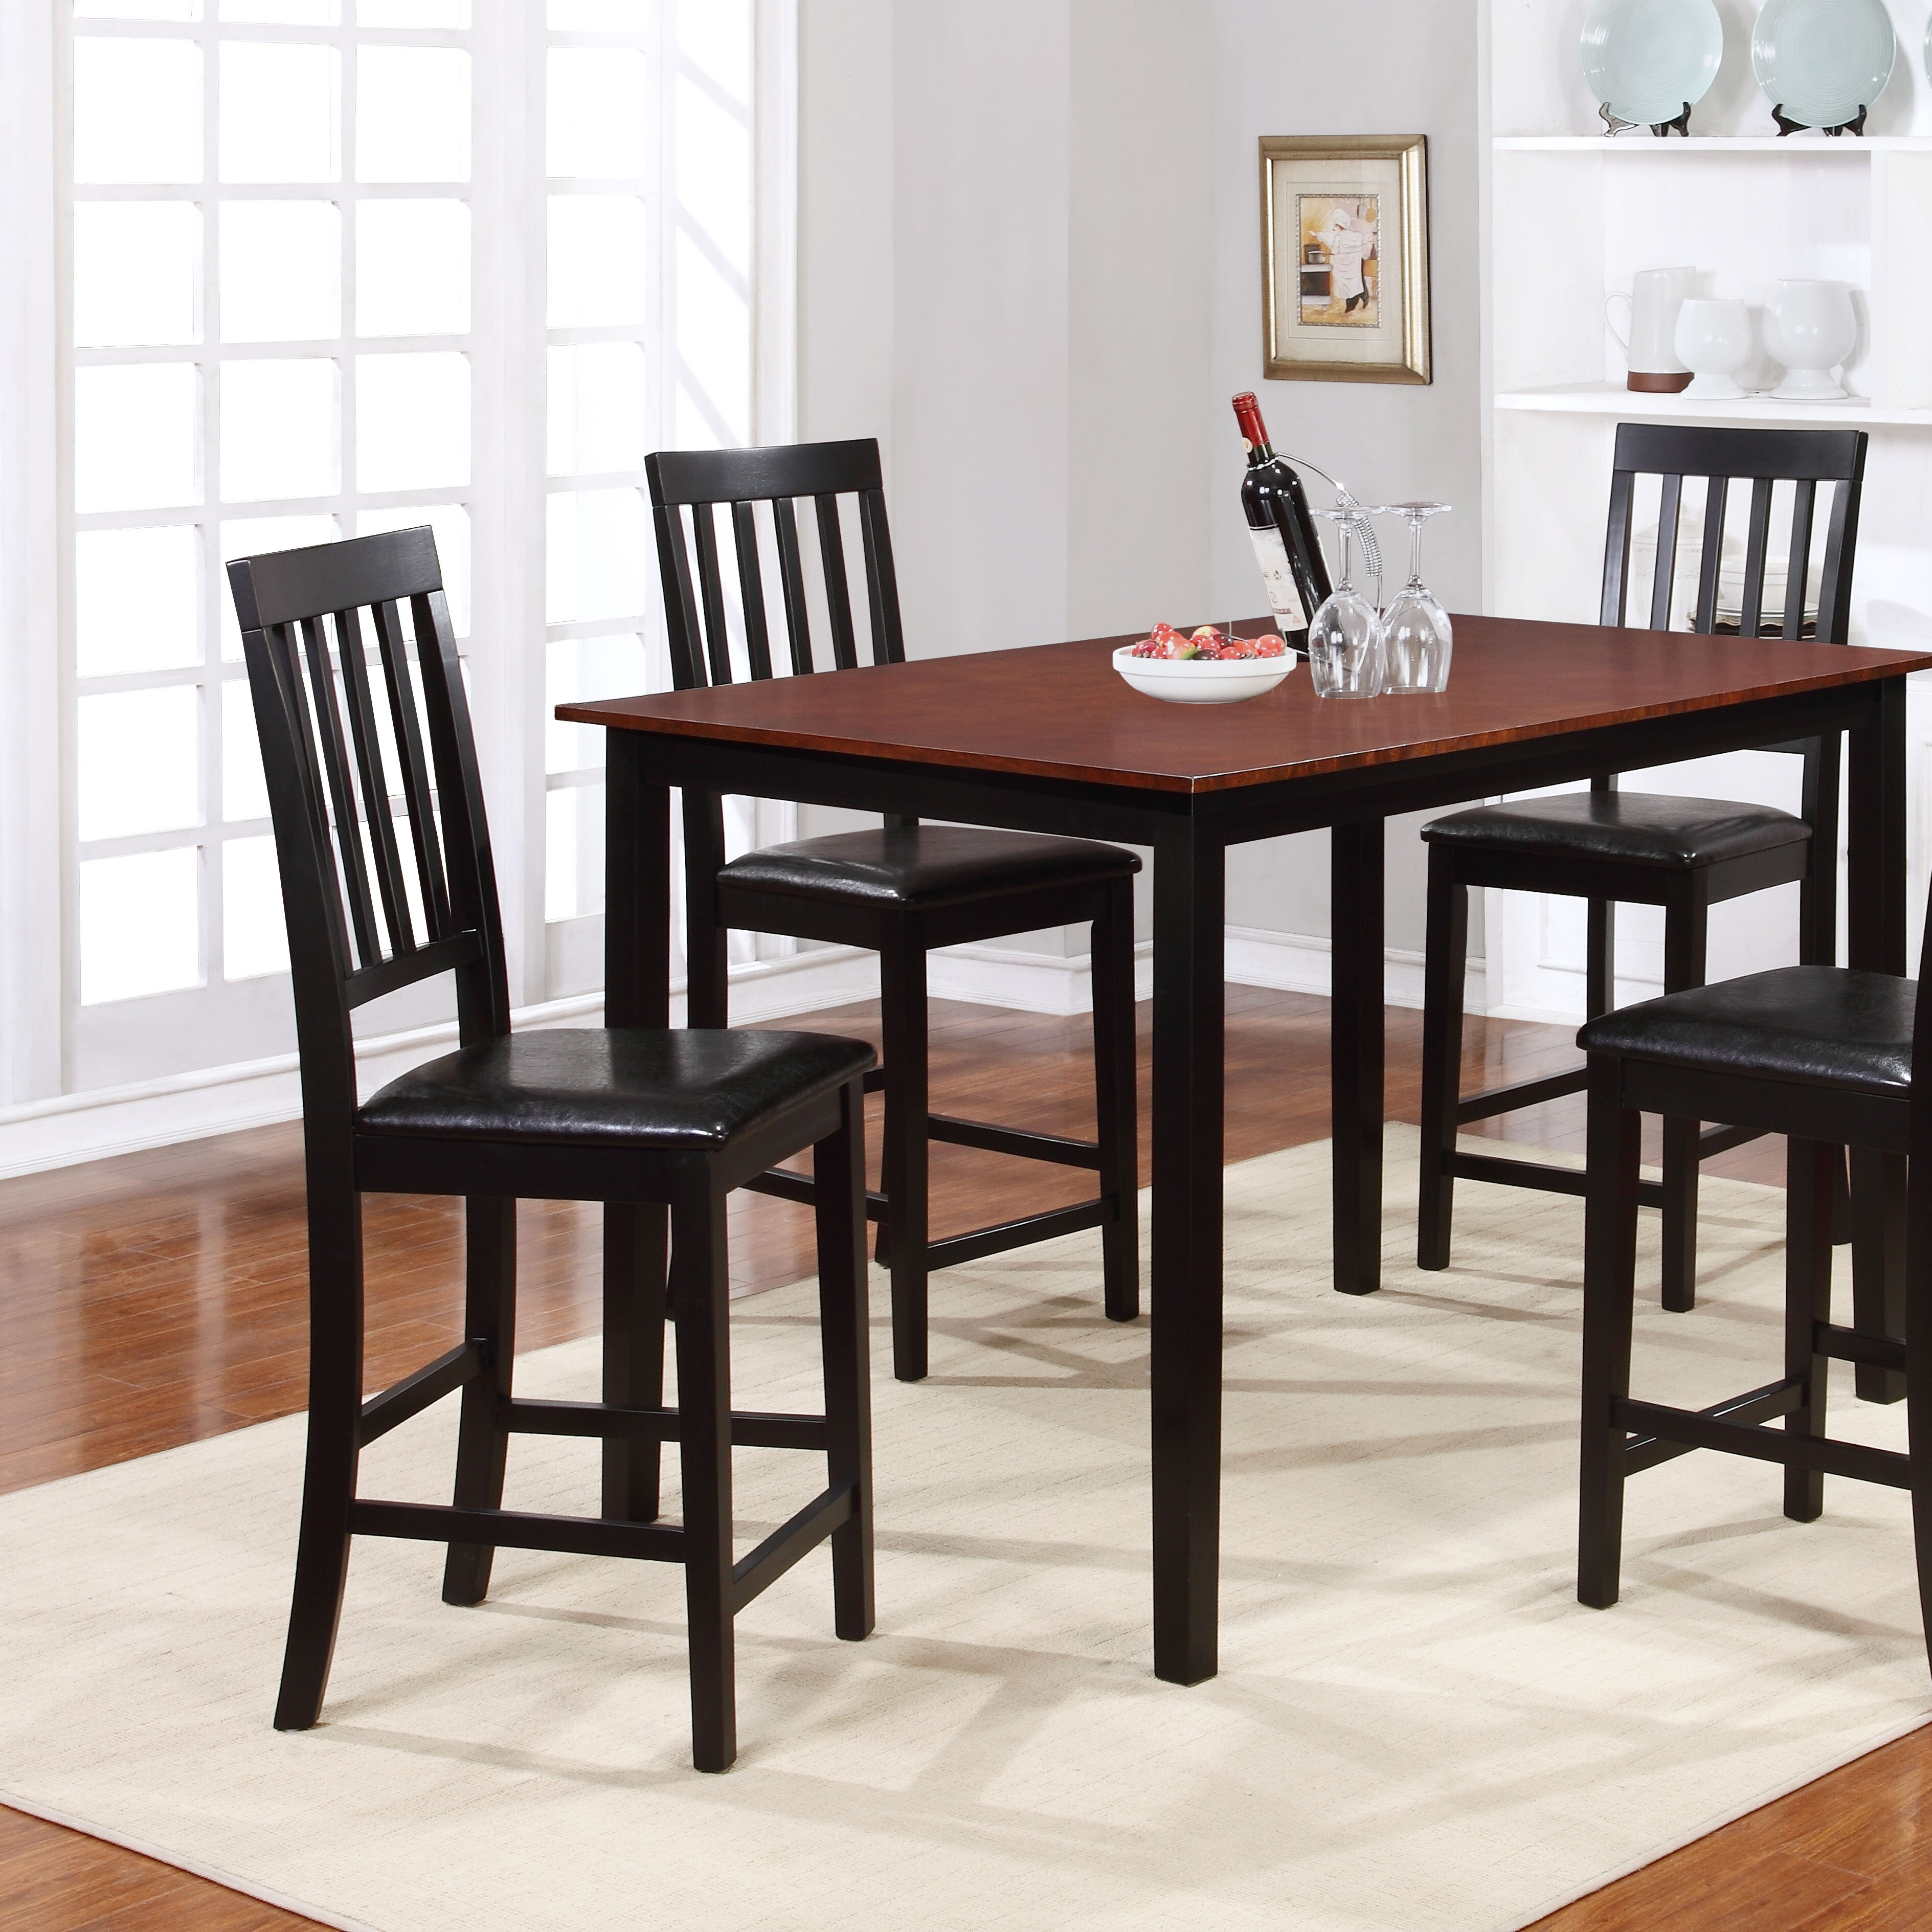 Charlton Home Andtree Counter Height Dining Table  : Charlton Home25C225AE Andtree Counter Height Dining Table from www.wayfair.ca size 3778 x 3778 jpeg 1364kB